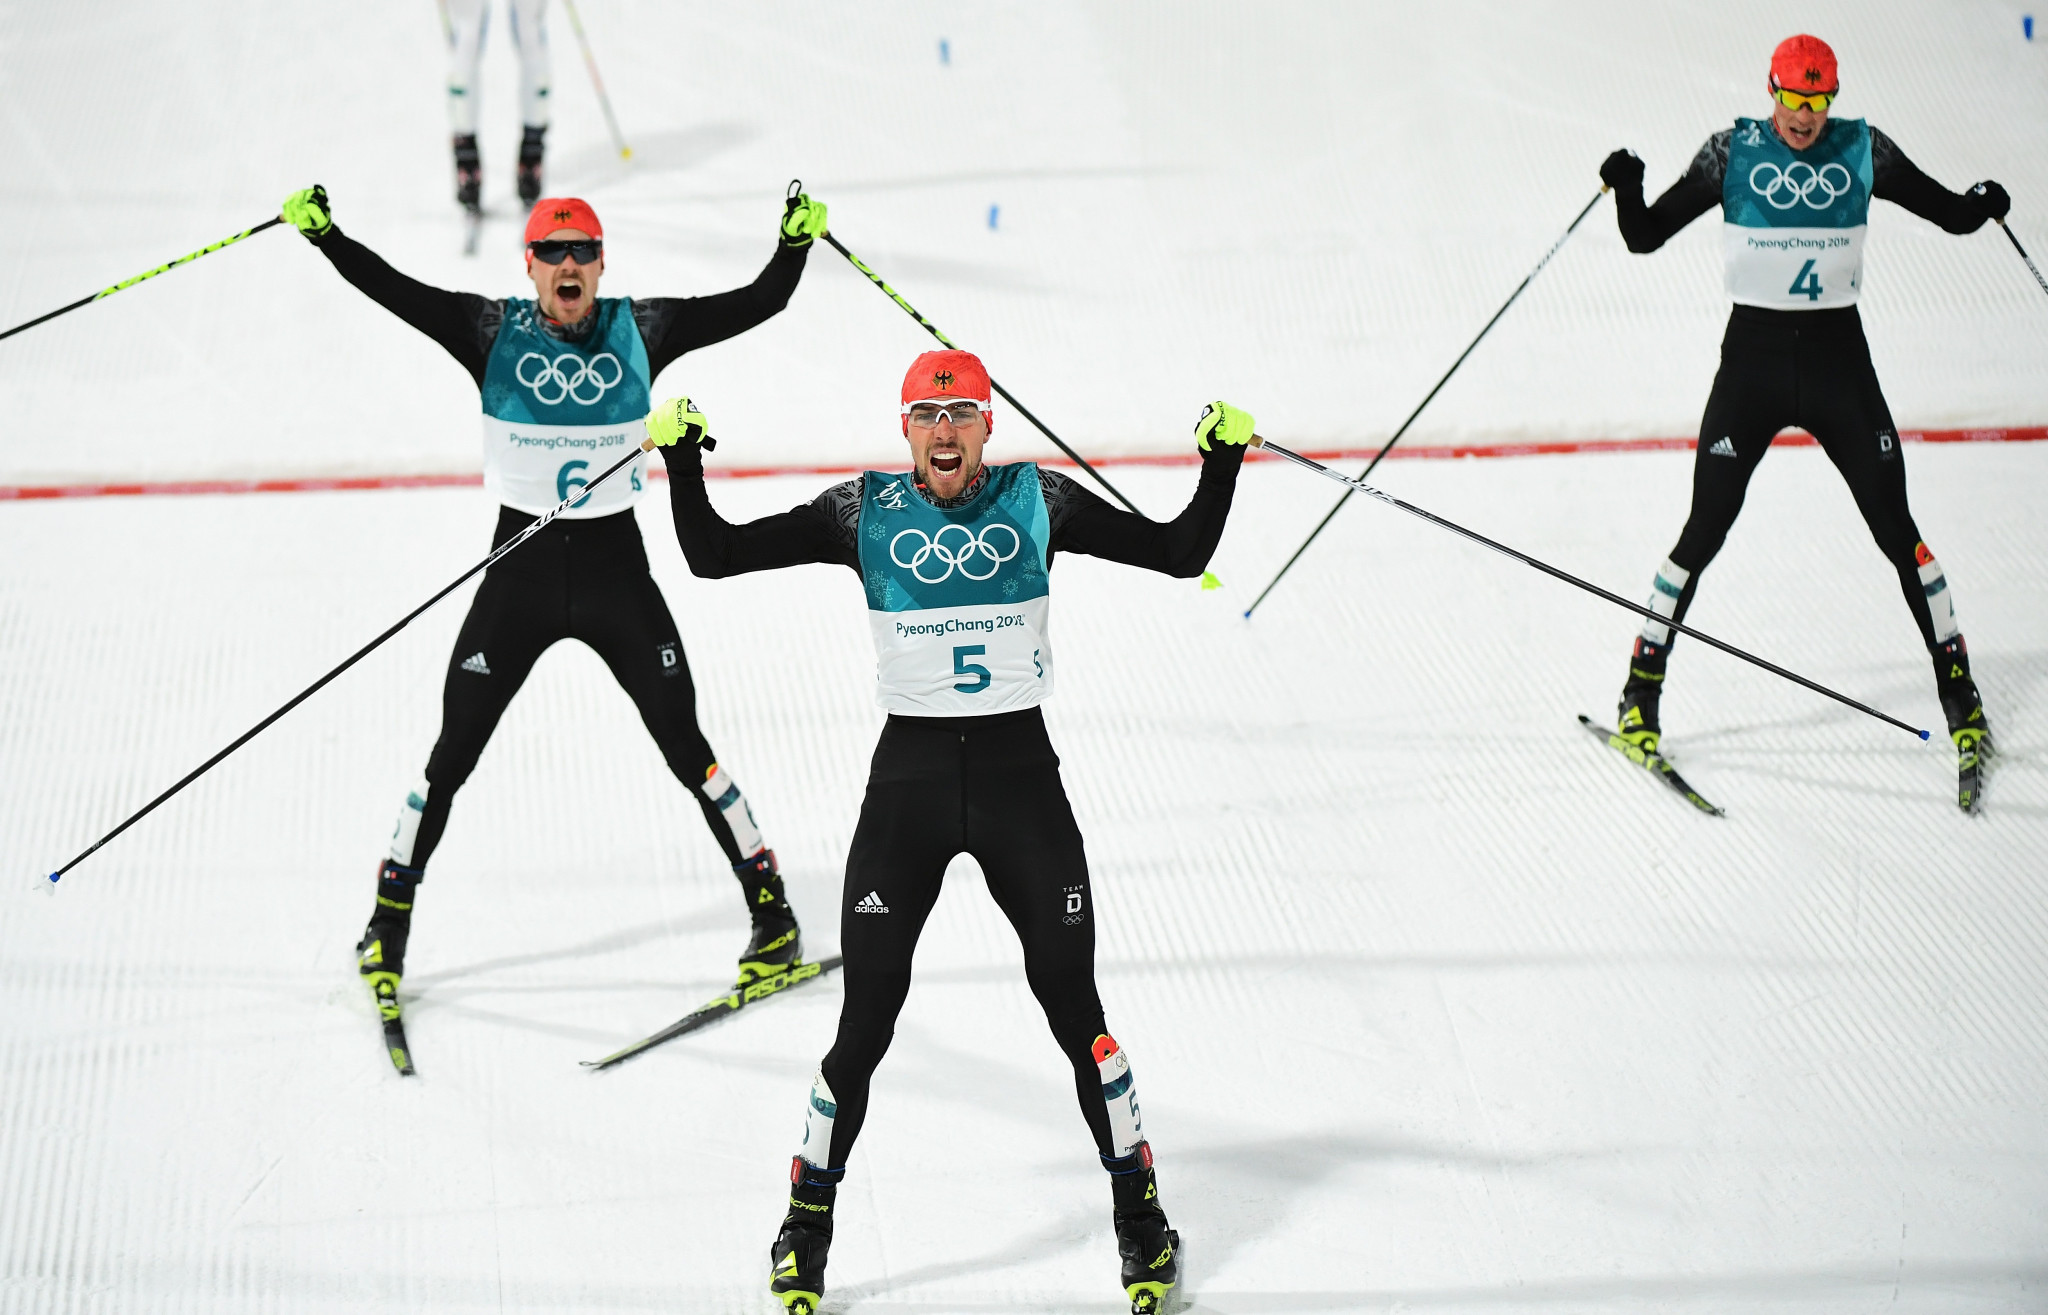 Rydzek leads Nordic combined podium sweep for Germany at Pyeongchang 2018